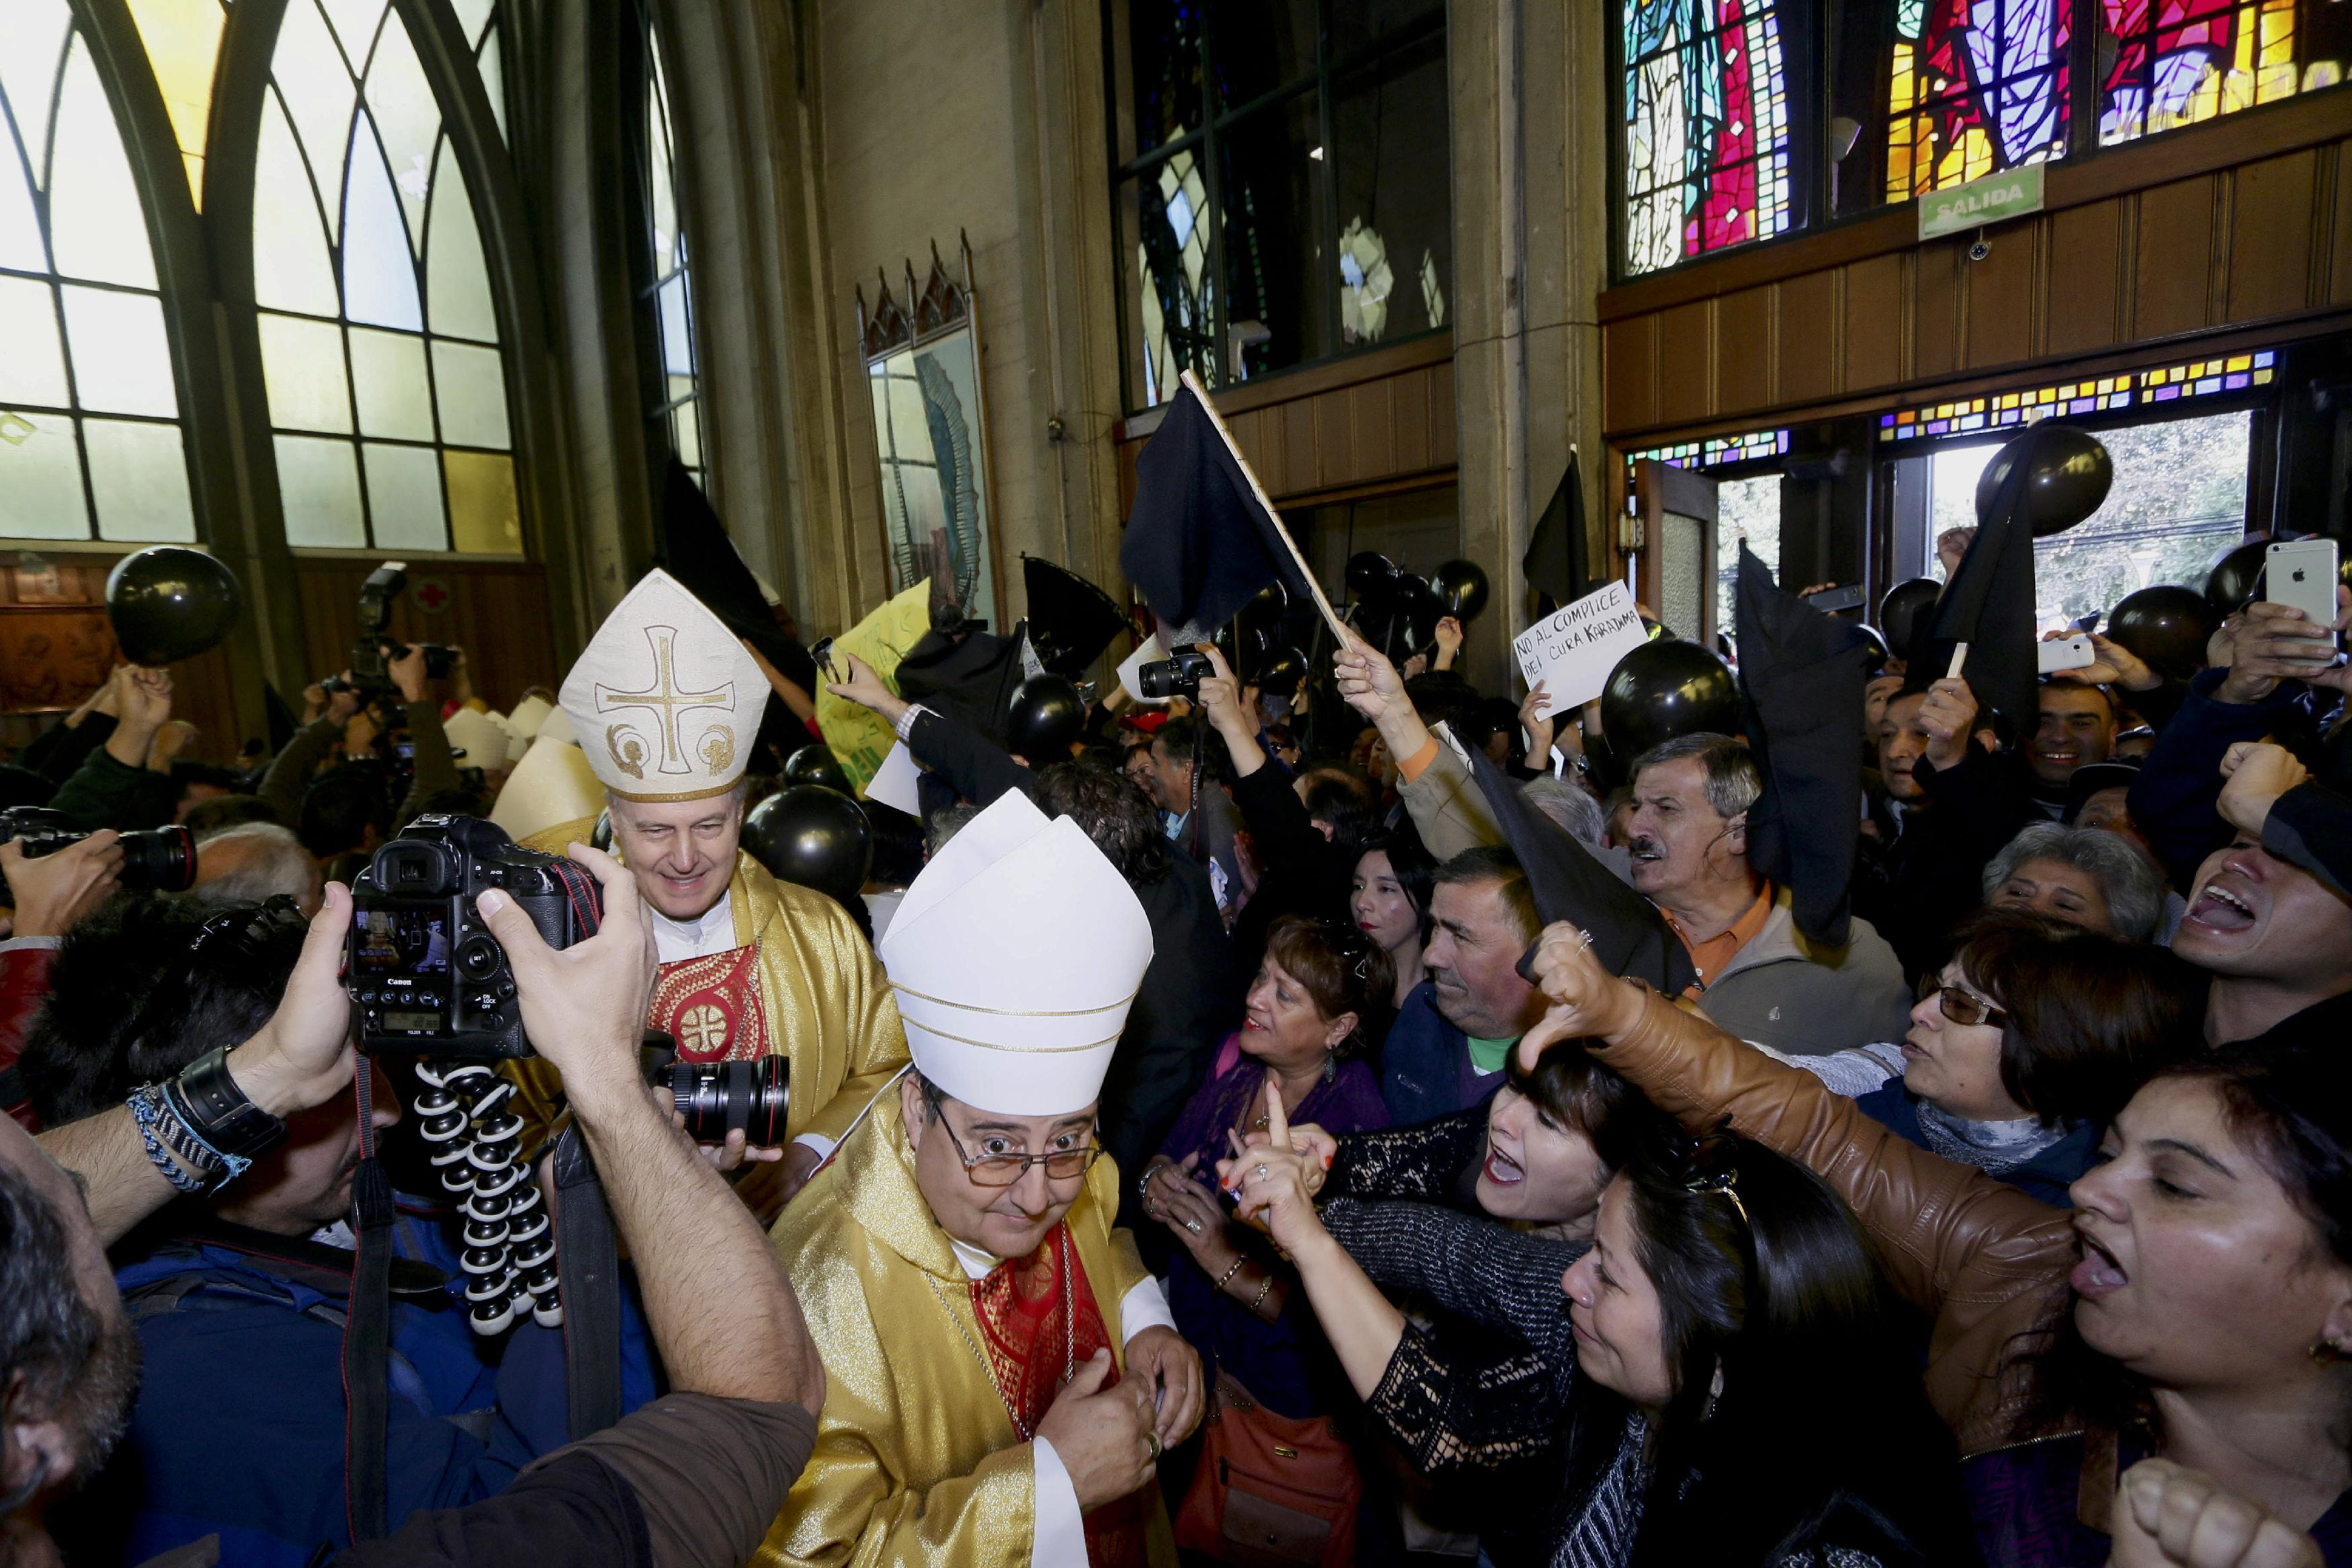 Much anger in southern Chile over bishop appointment